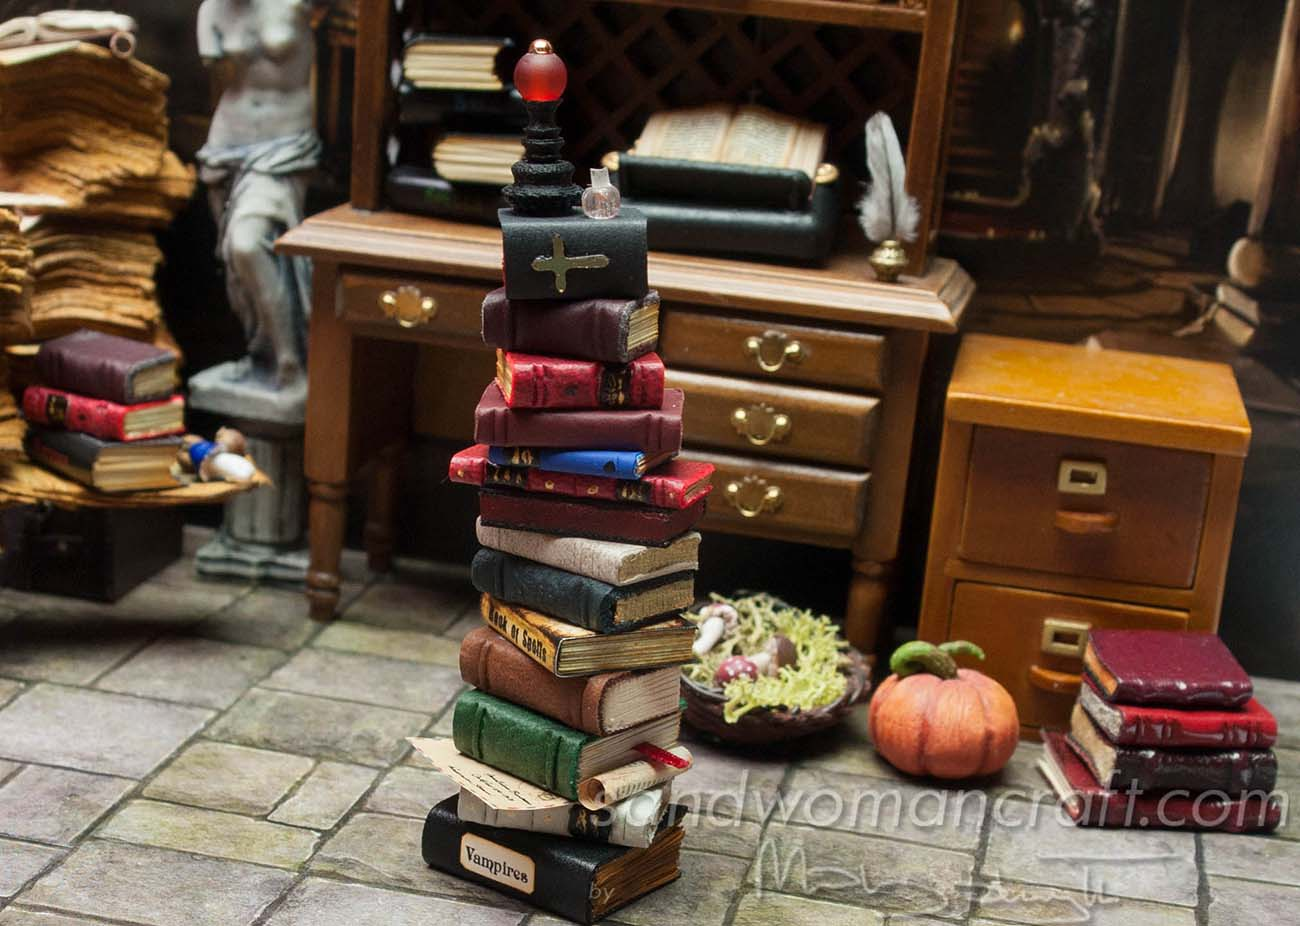 Stack contains Spells book and Vampires book